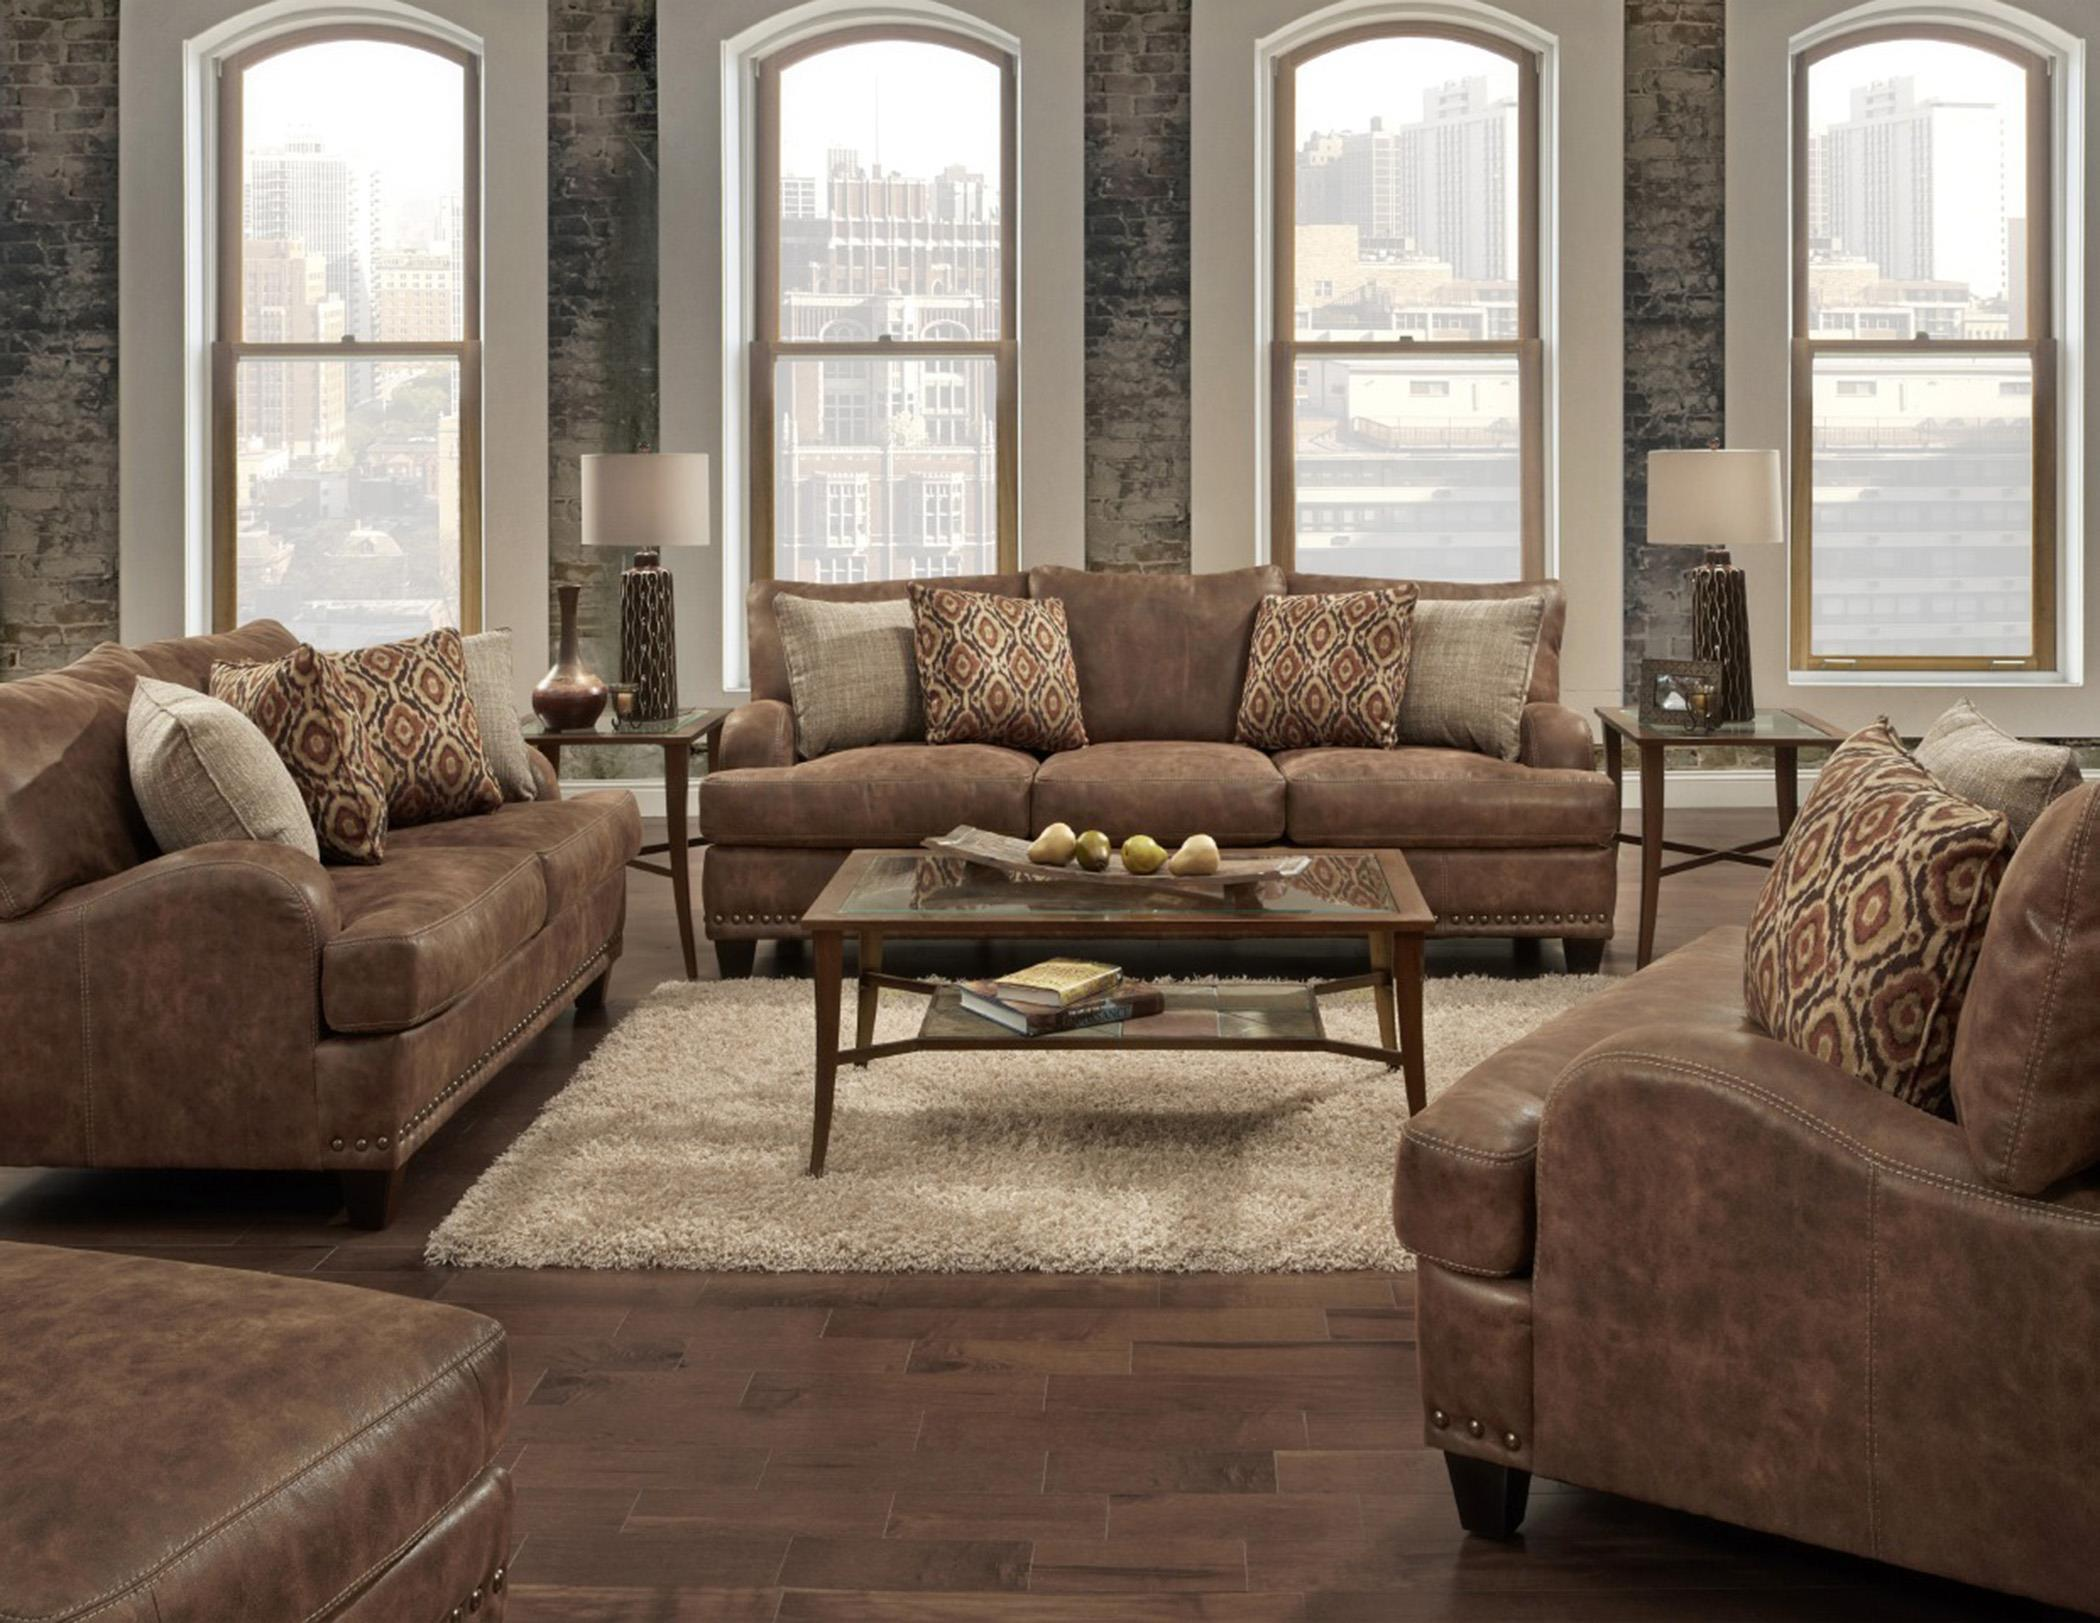 848 Stationary Living Room Group by Franklin at Fine Home Furnishings